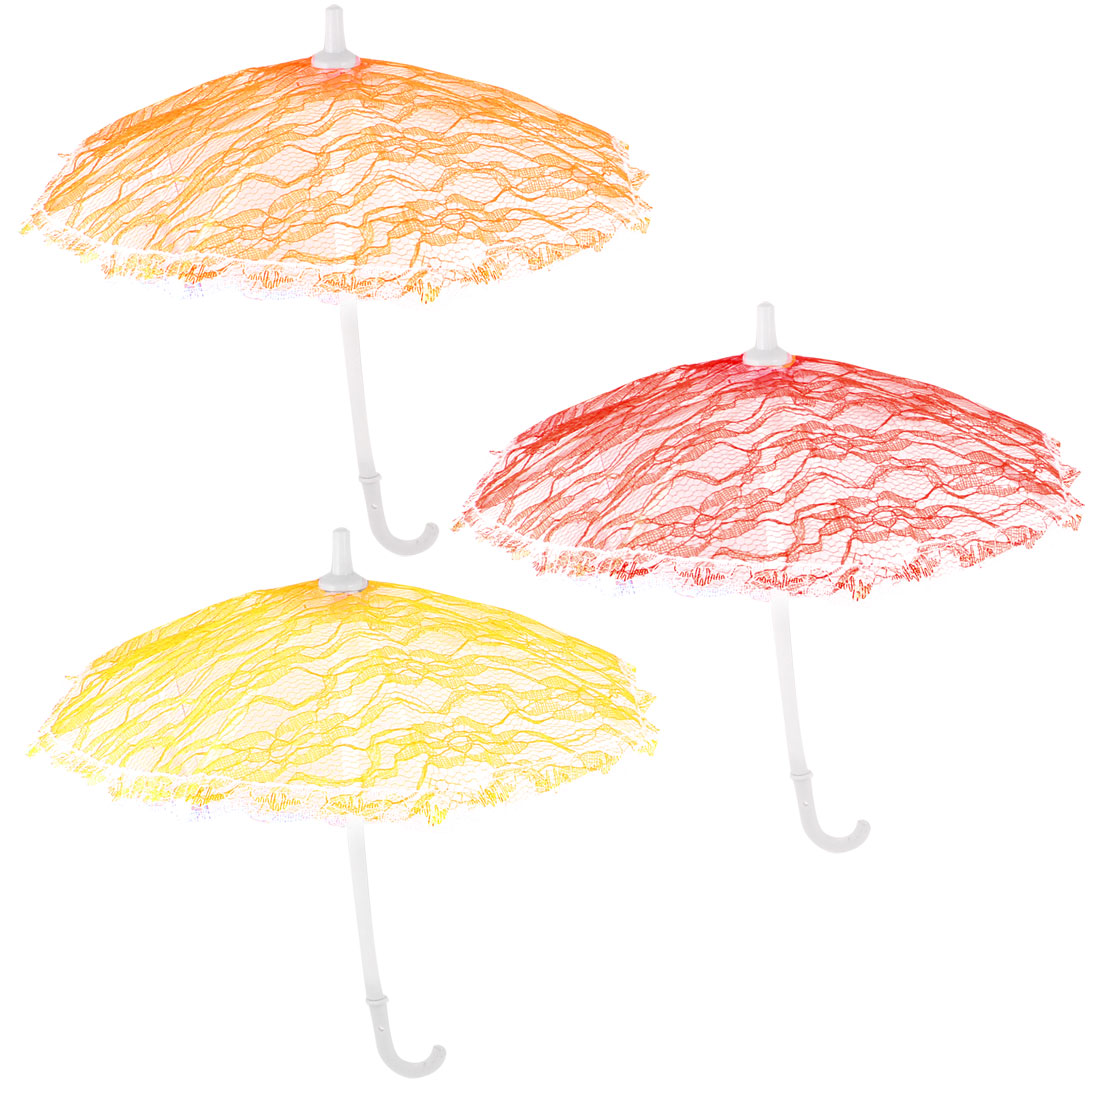 House Decor 8 Plastic Ribs Multi Color Lace Mini Umbrella 3 Pcs